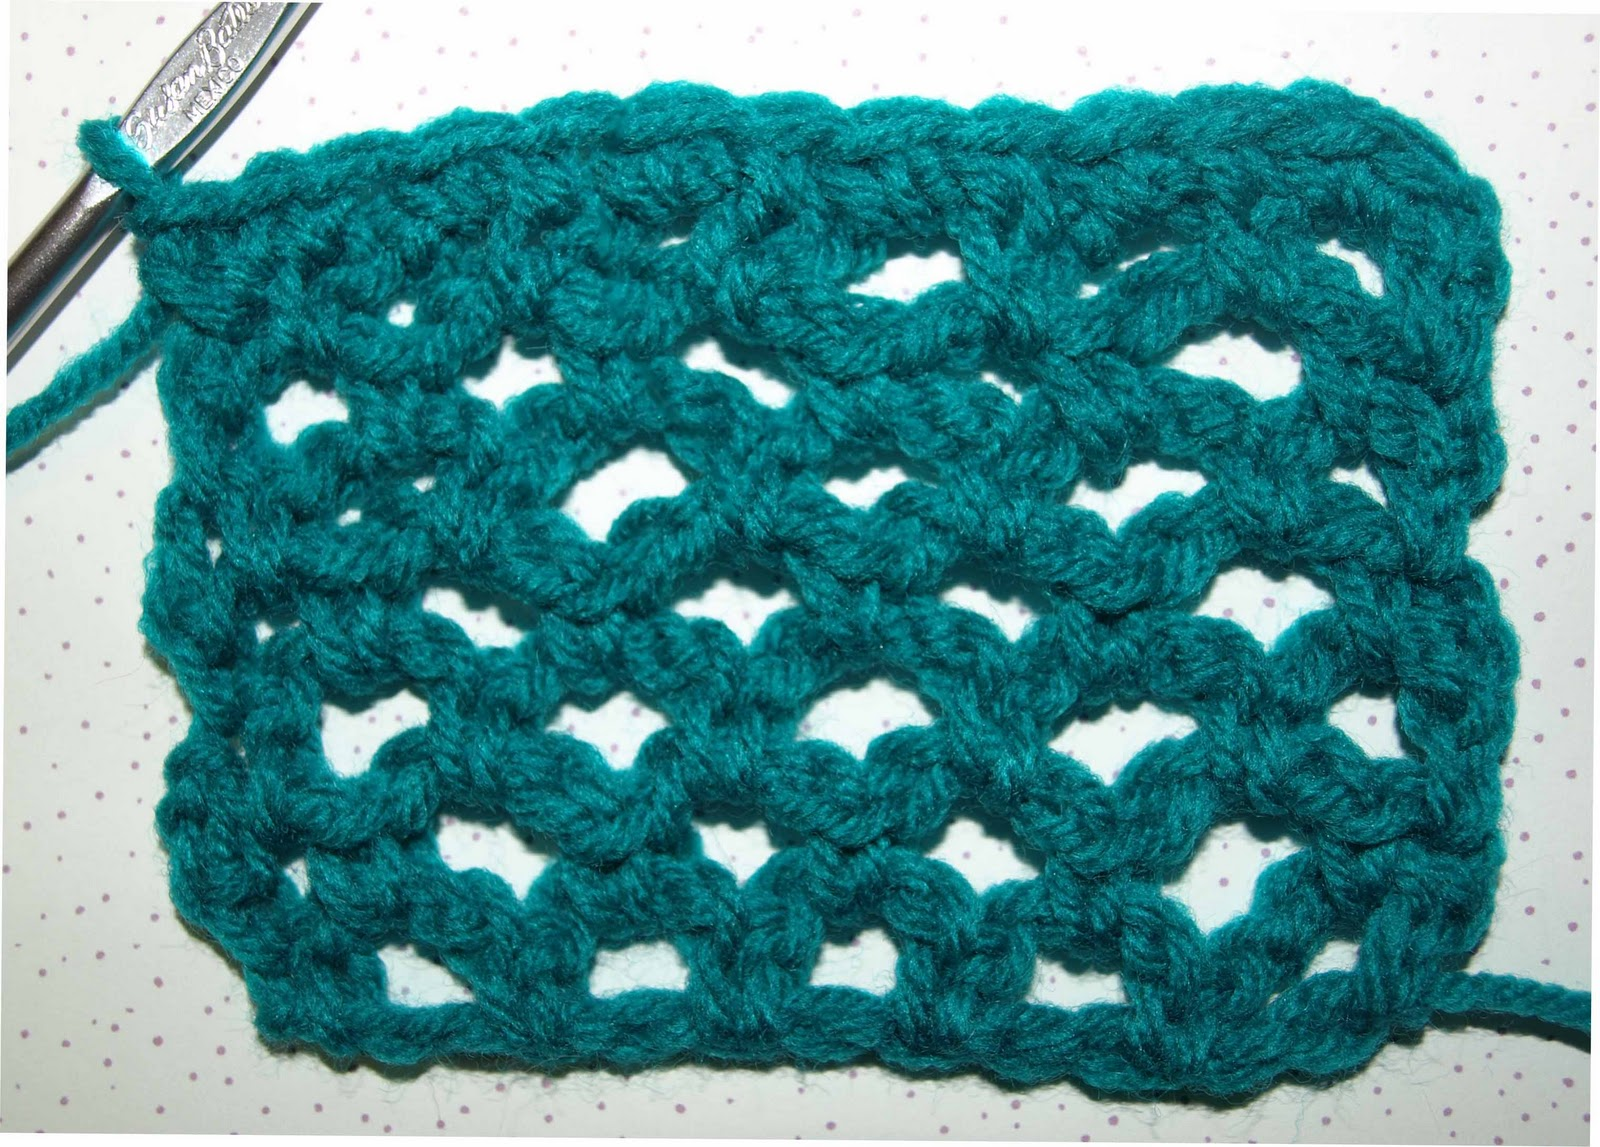 Crochetbykarin crocheting arches crochet stitches in the chain 2 space a sc to each chain 3 space and sc stitch from the previous row and 2 single crochet stitches in the last chain 2 ccuart Image collections